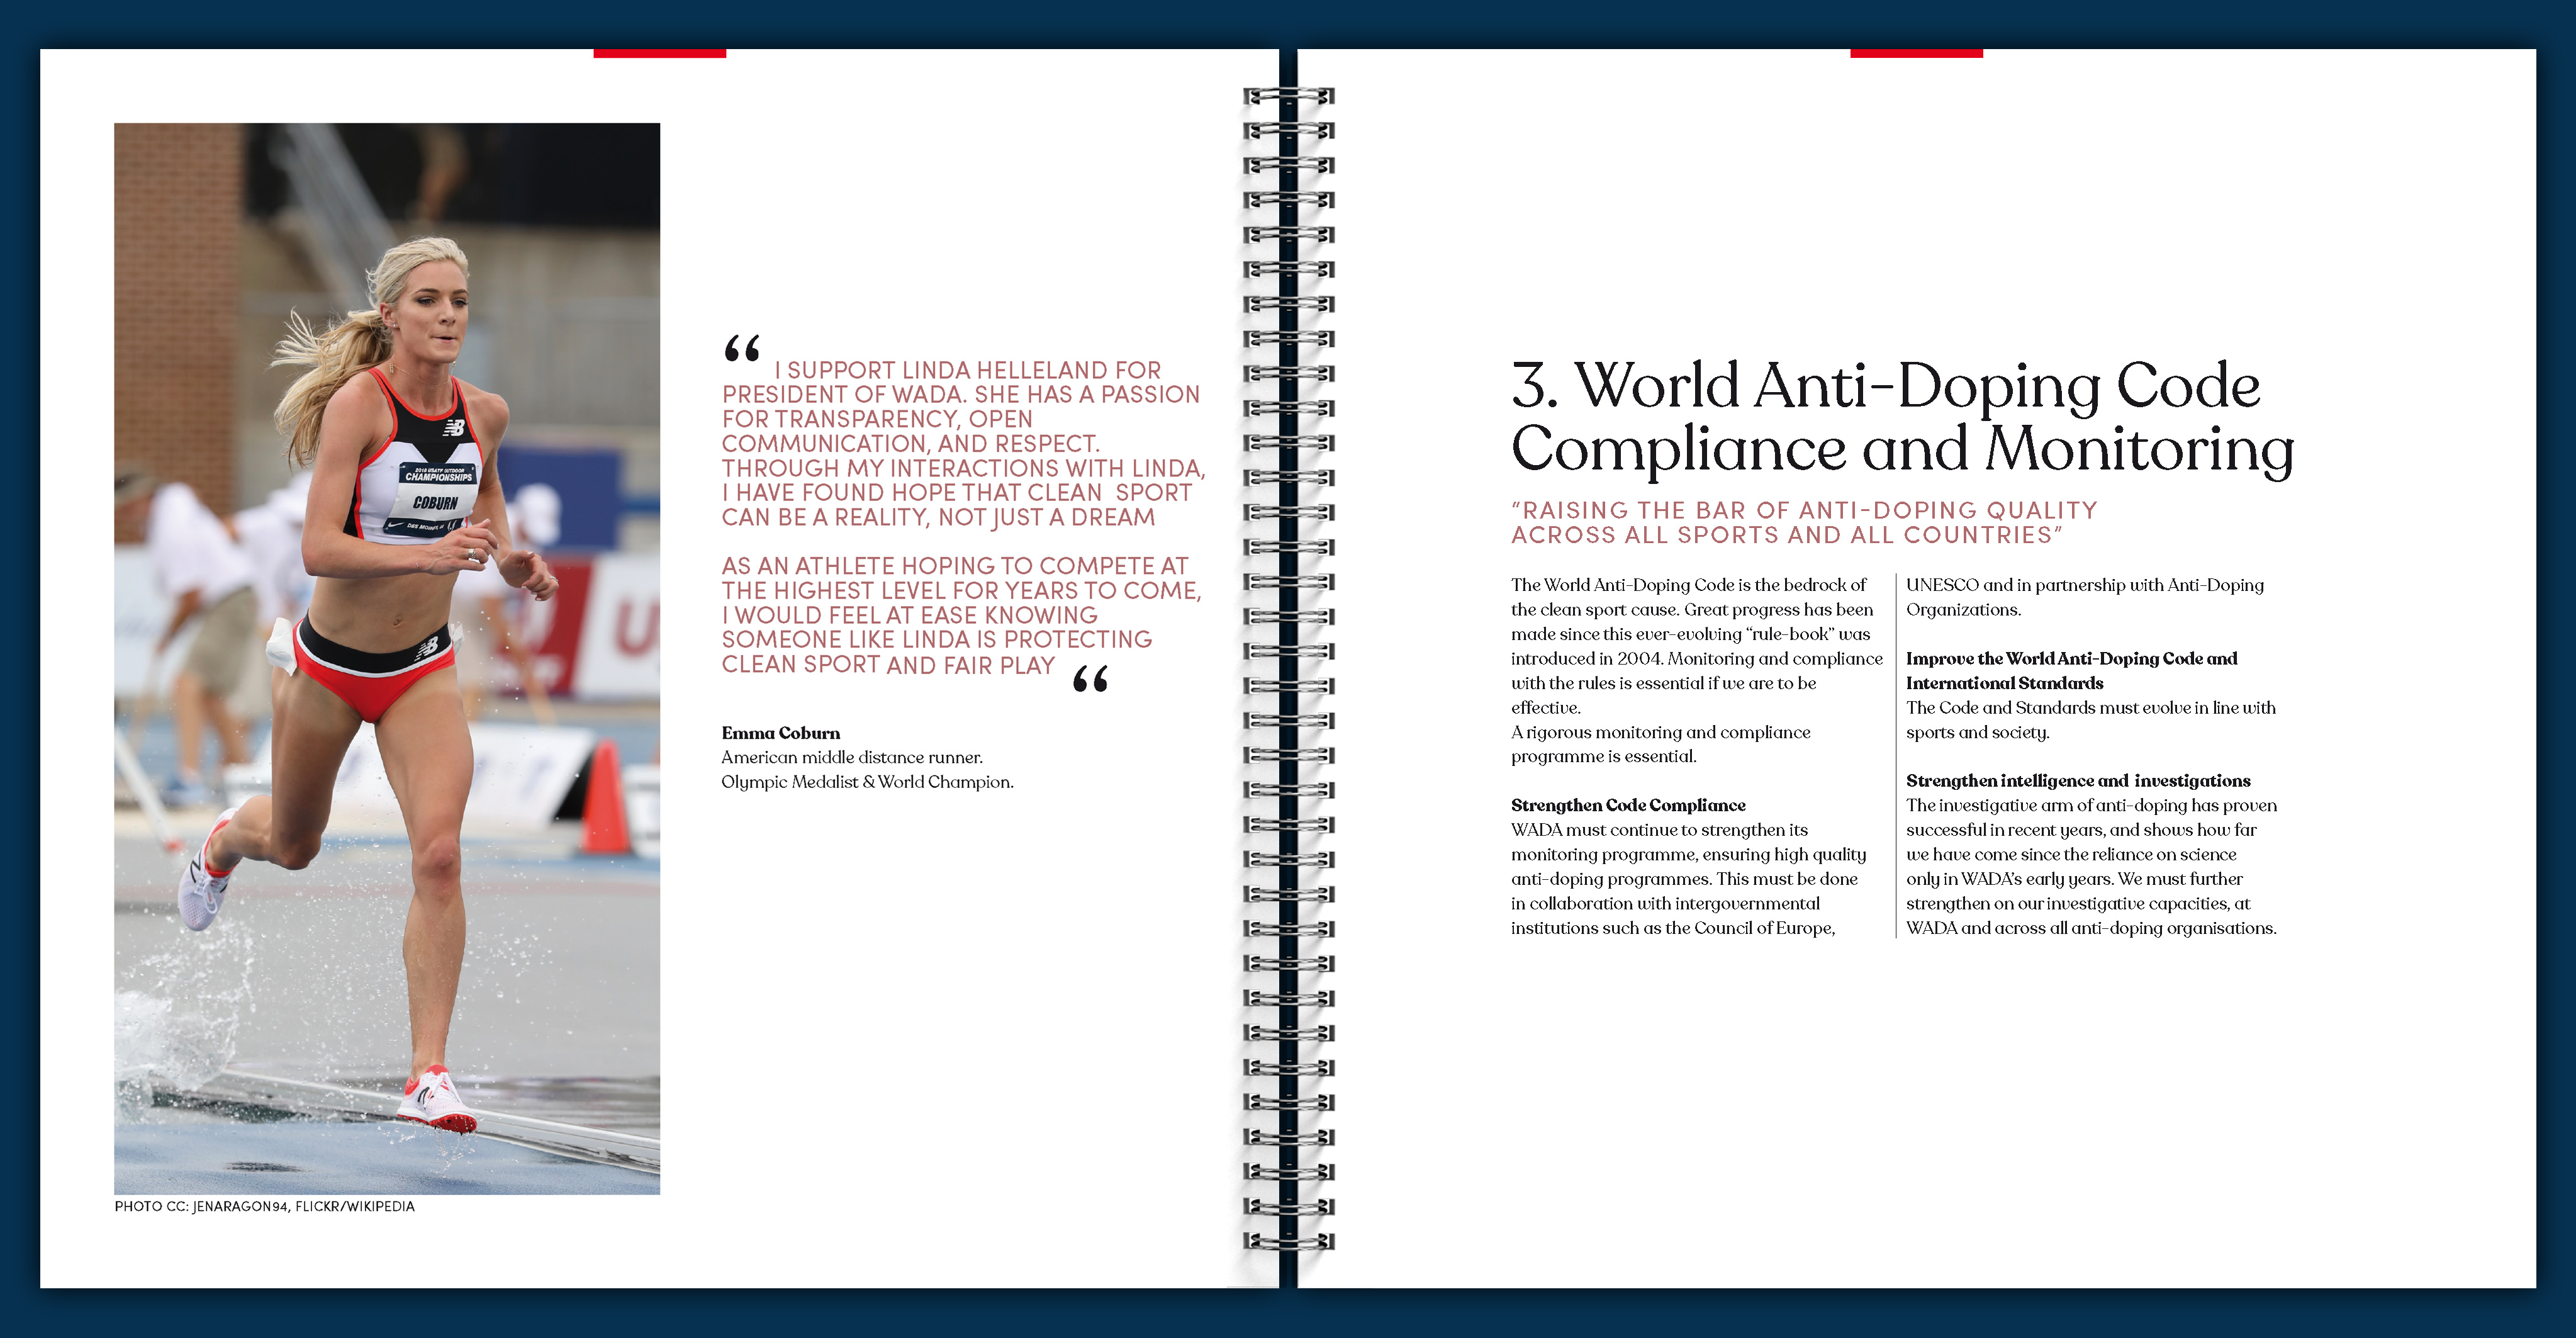 World Anti-Doping Code Compliance and Monitoring